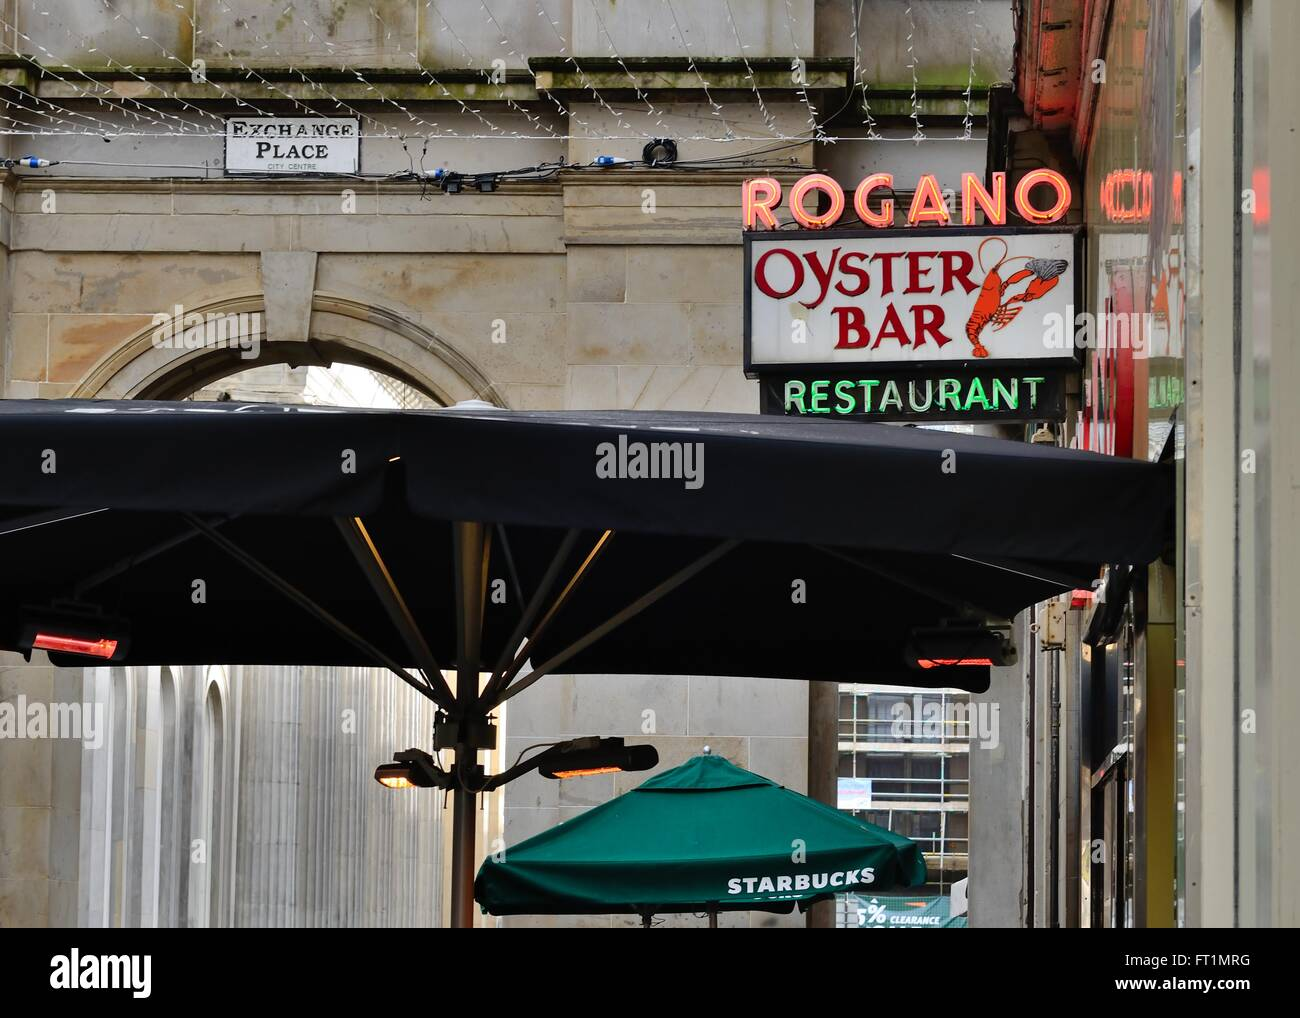 The famous Rogano Oyster Bar Restaurant sign in Glasgow, Scotland, UK - Stock Image